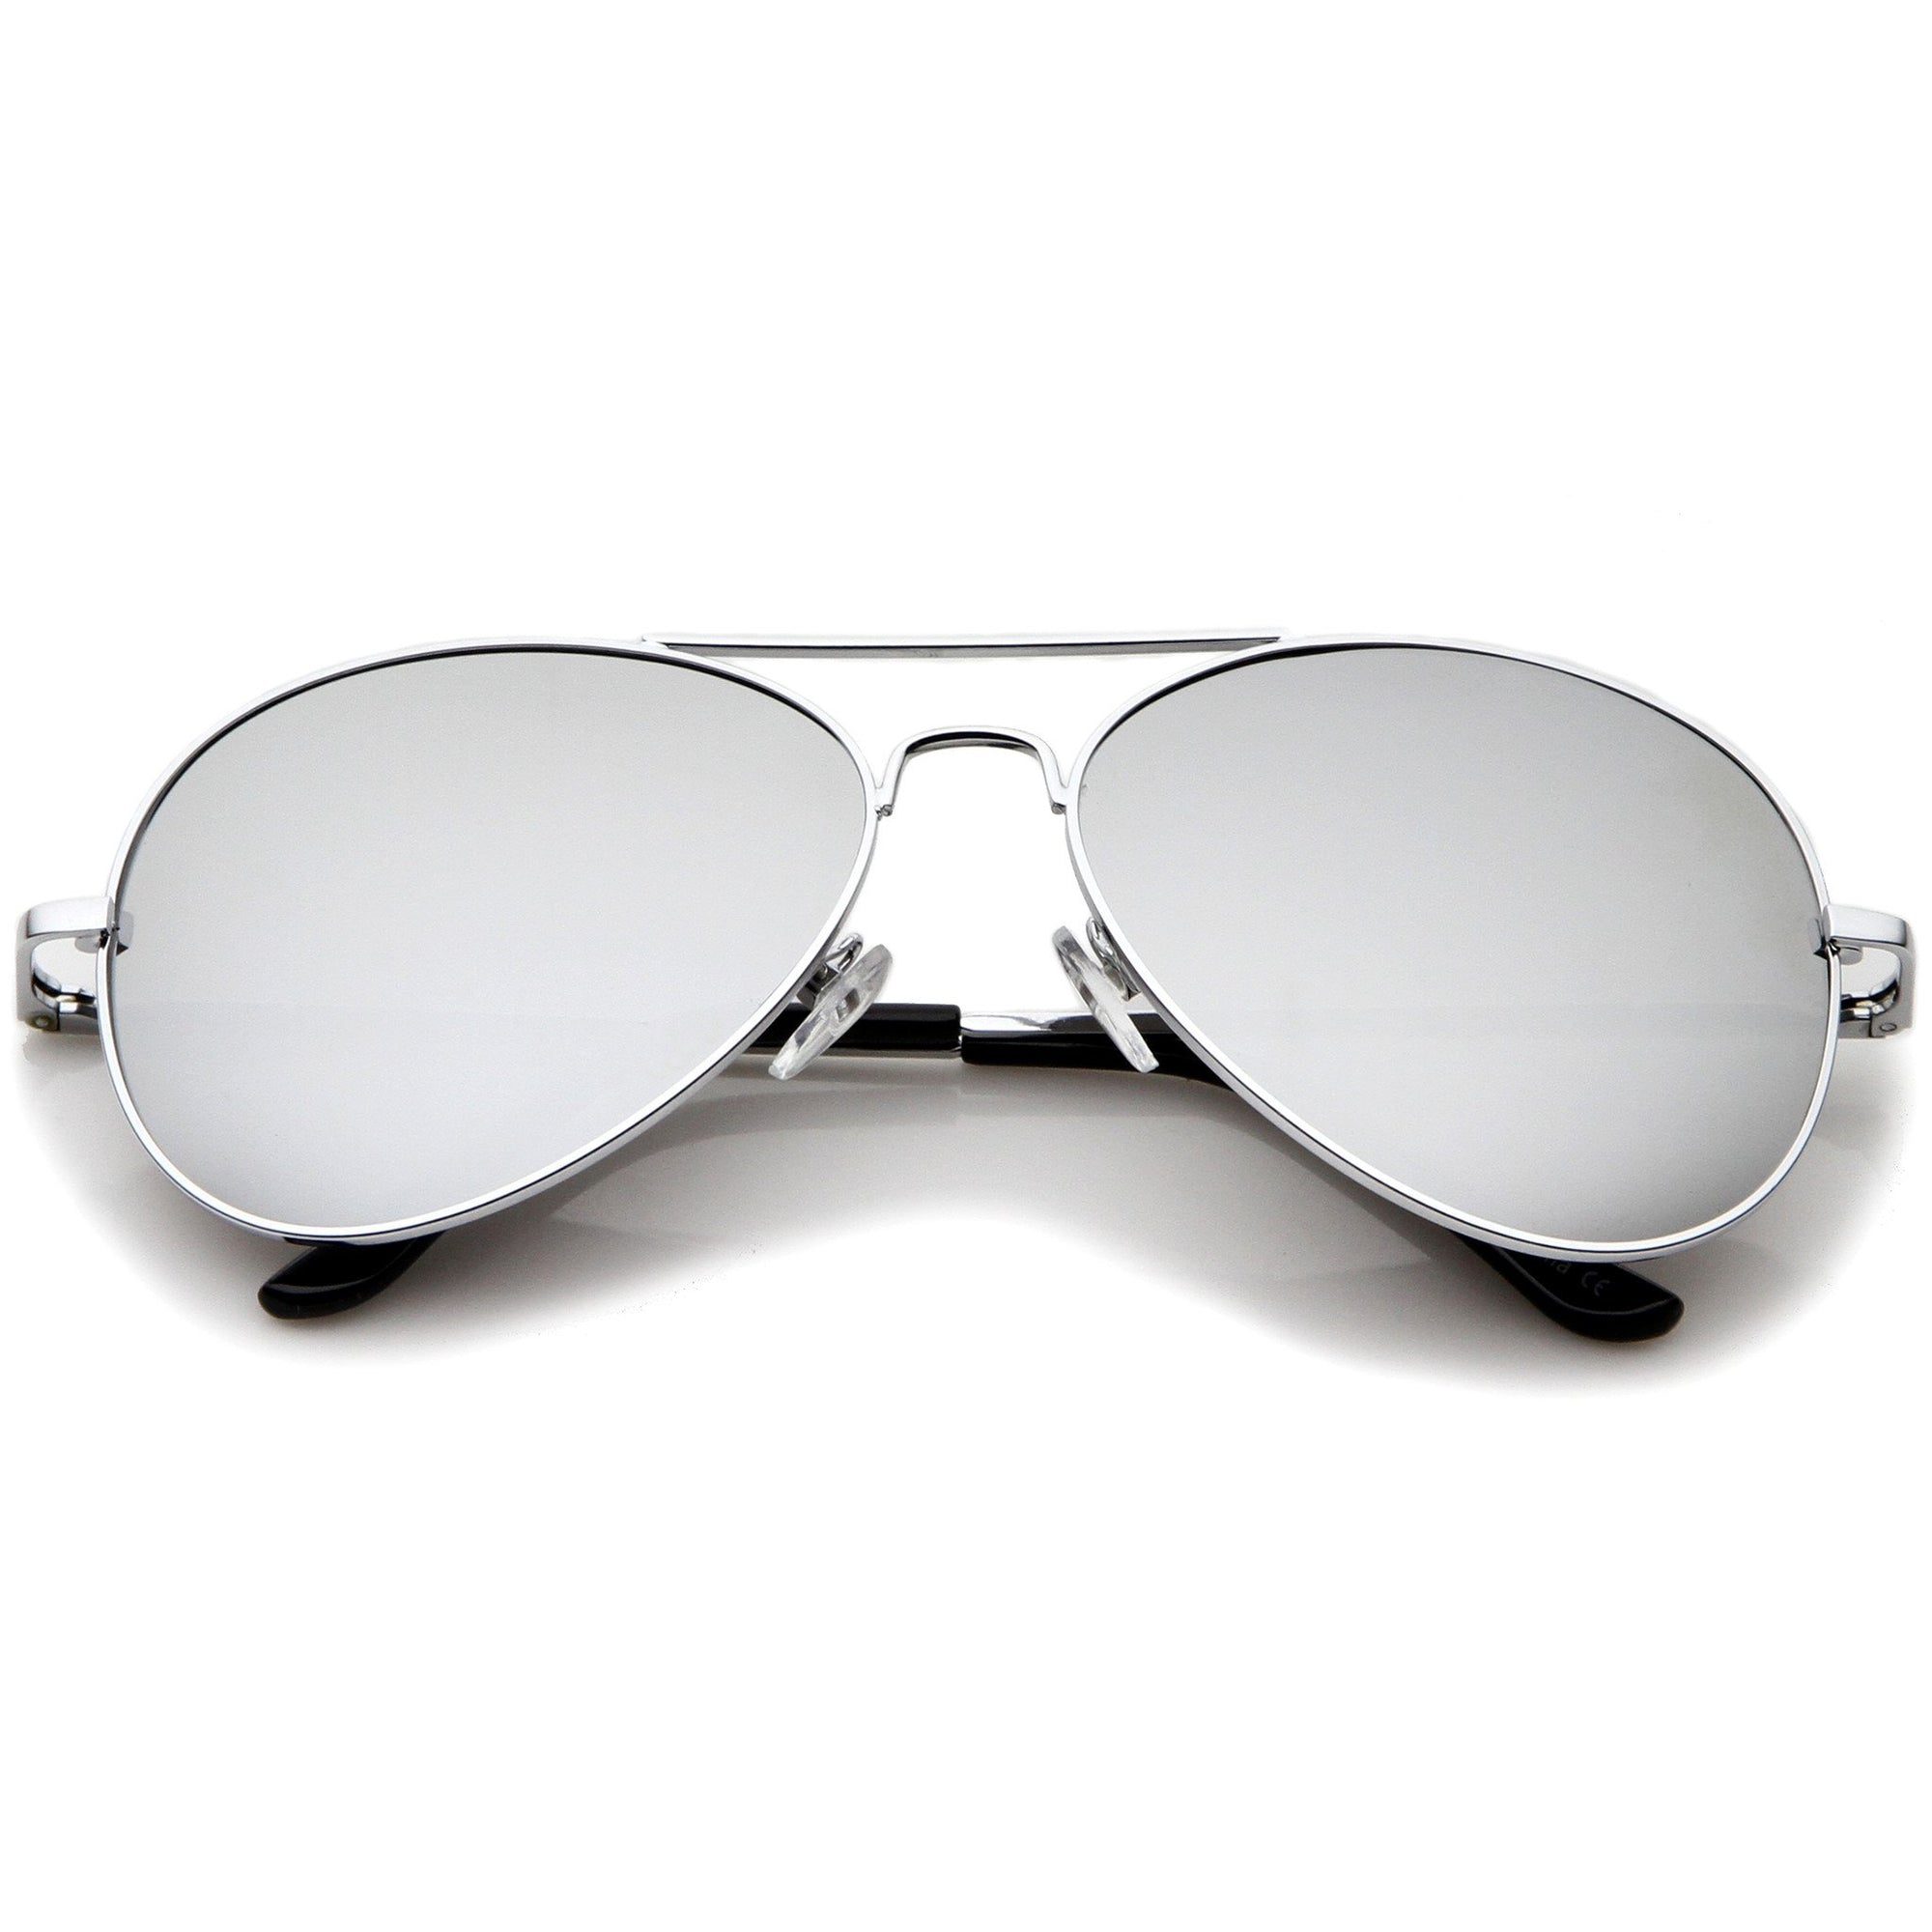 918abfb9b9 Premium Military Mirrored Lens Metal Aviator Sunglasses 1375 58mm